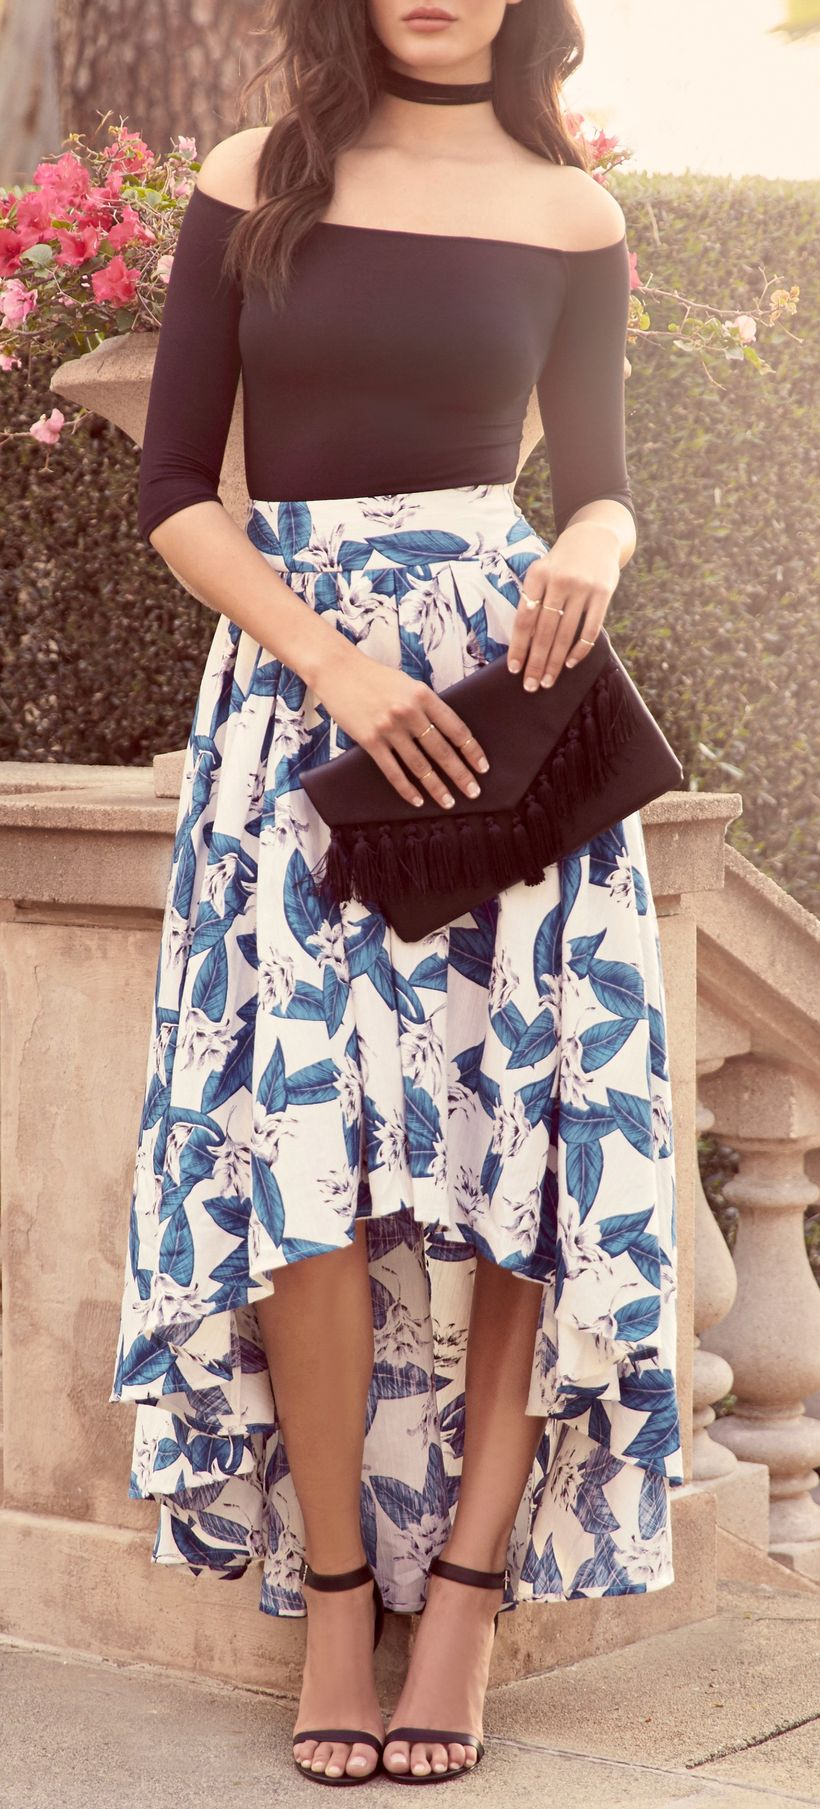 Fashionable skirt outfits ideas that you must try 12